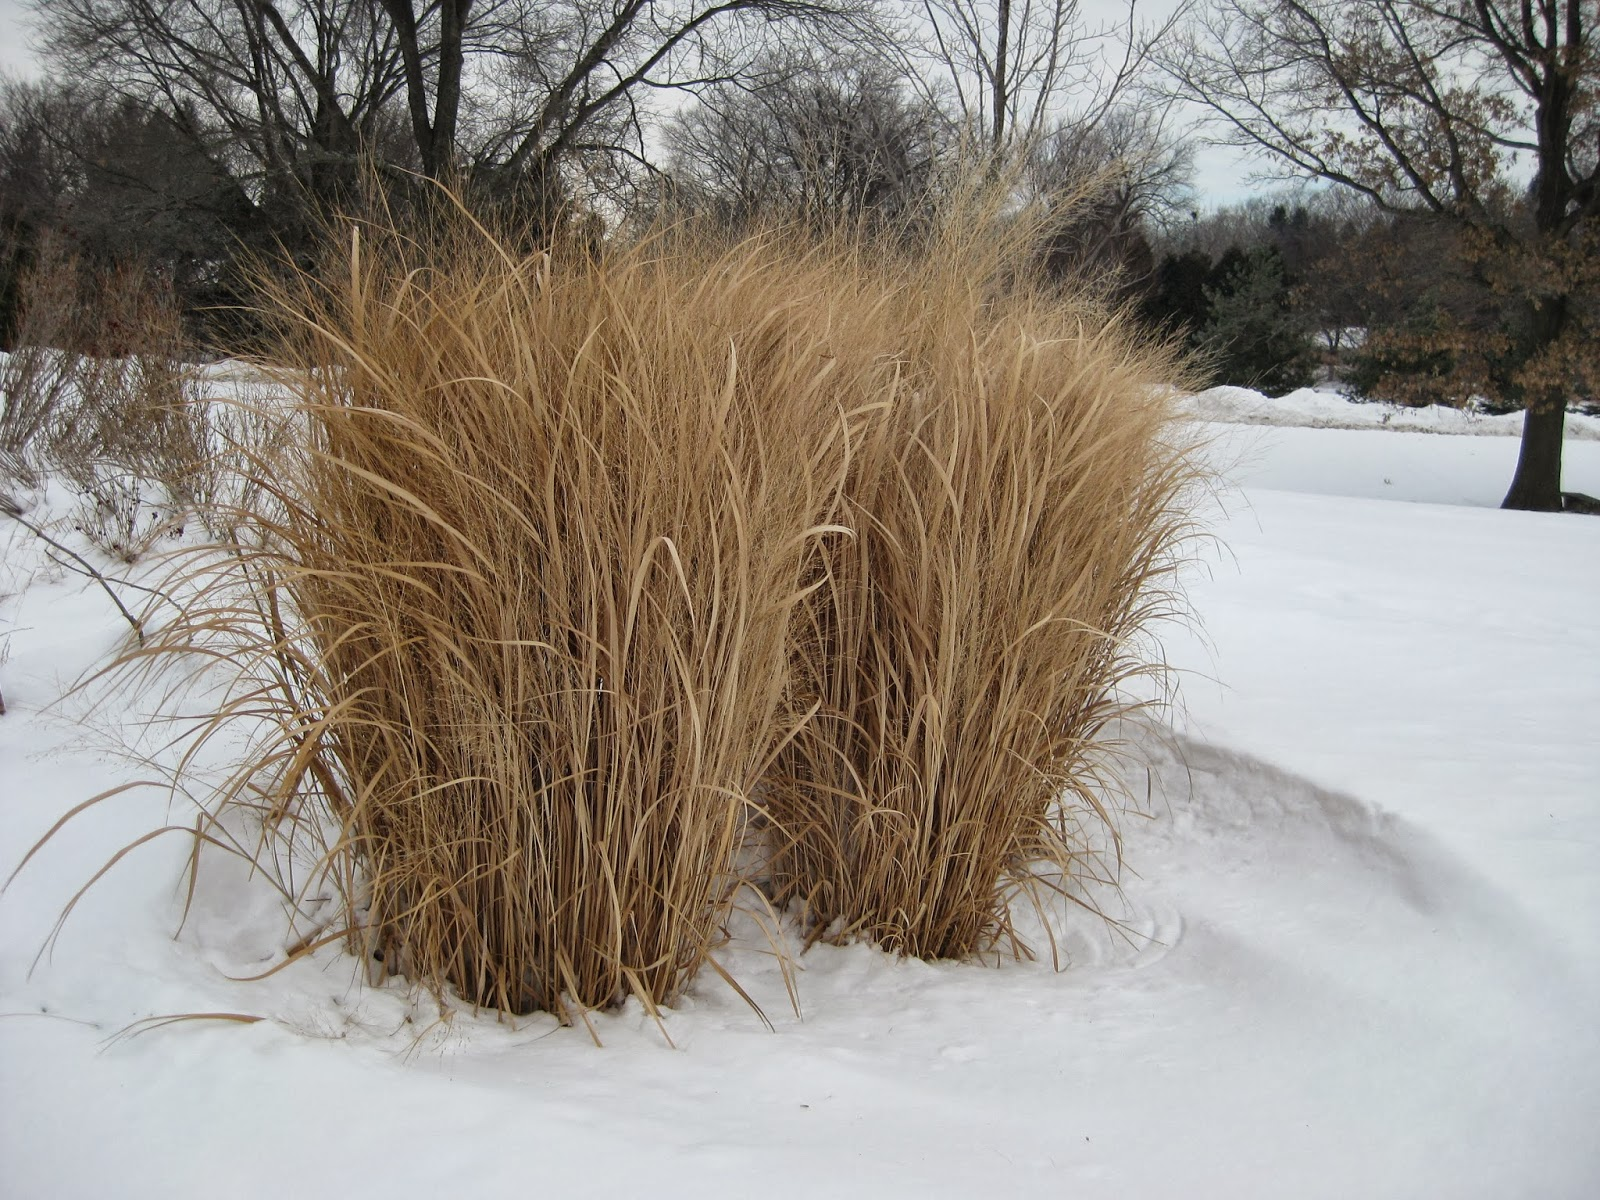 Rotary botanical gardens hort blog 39 northwind for Ornamental grasses that stay green all year